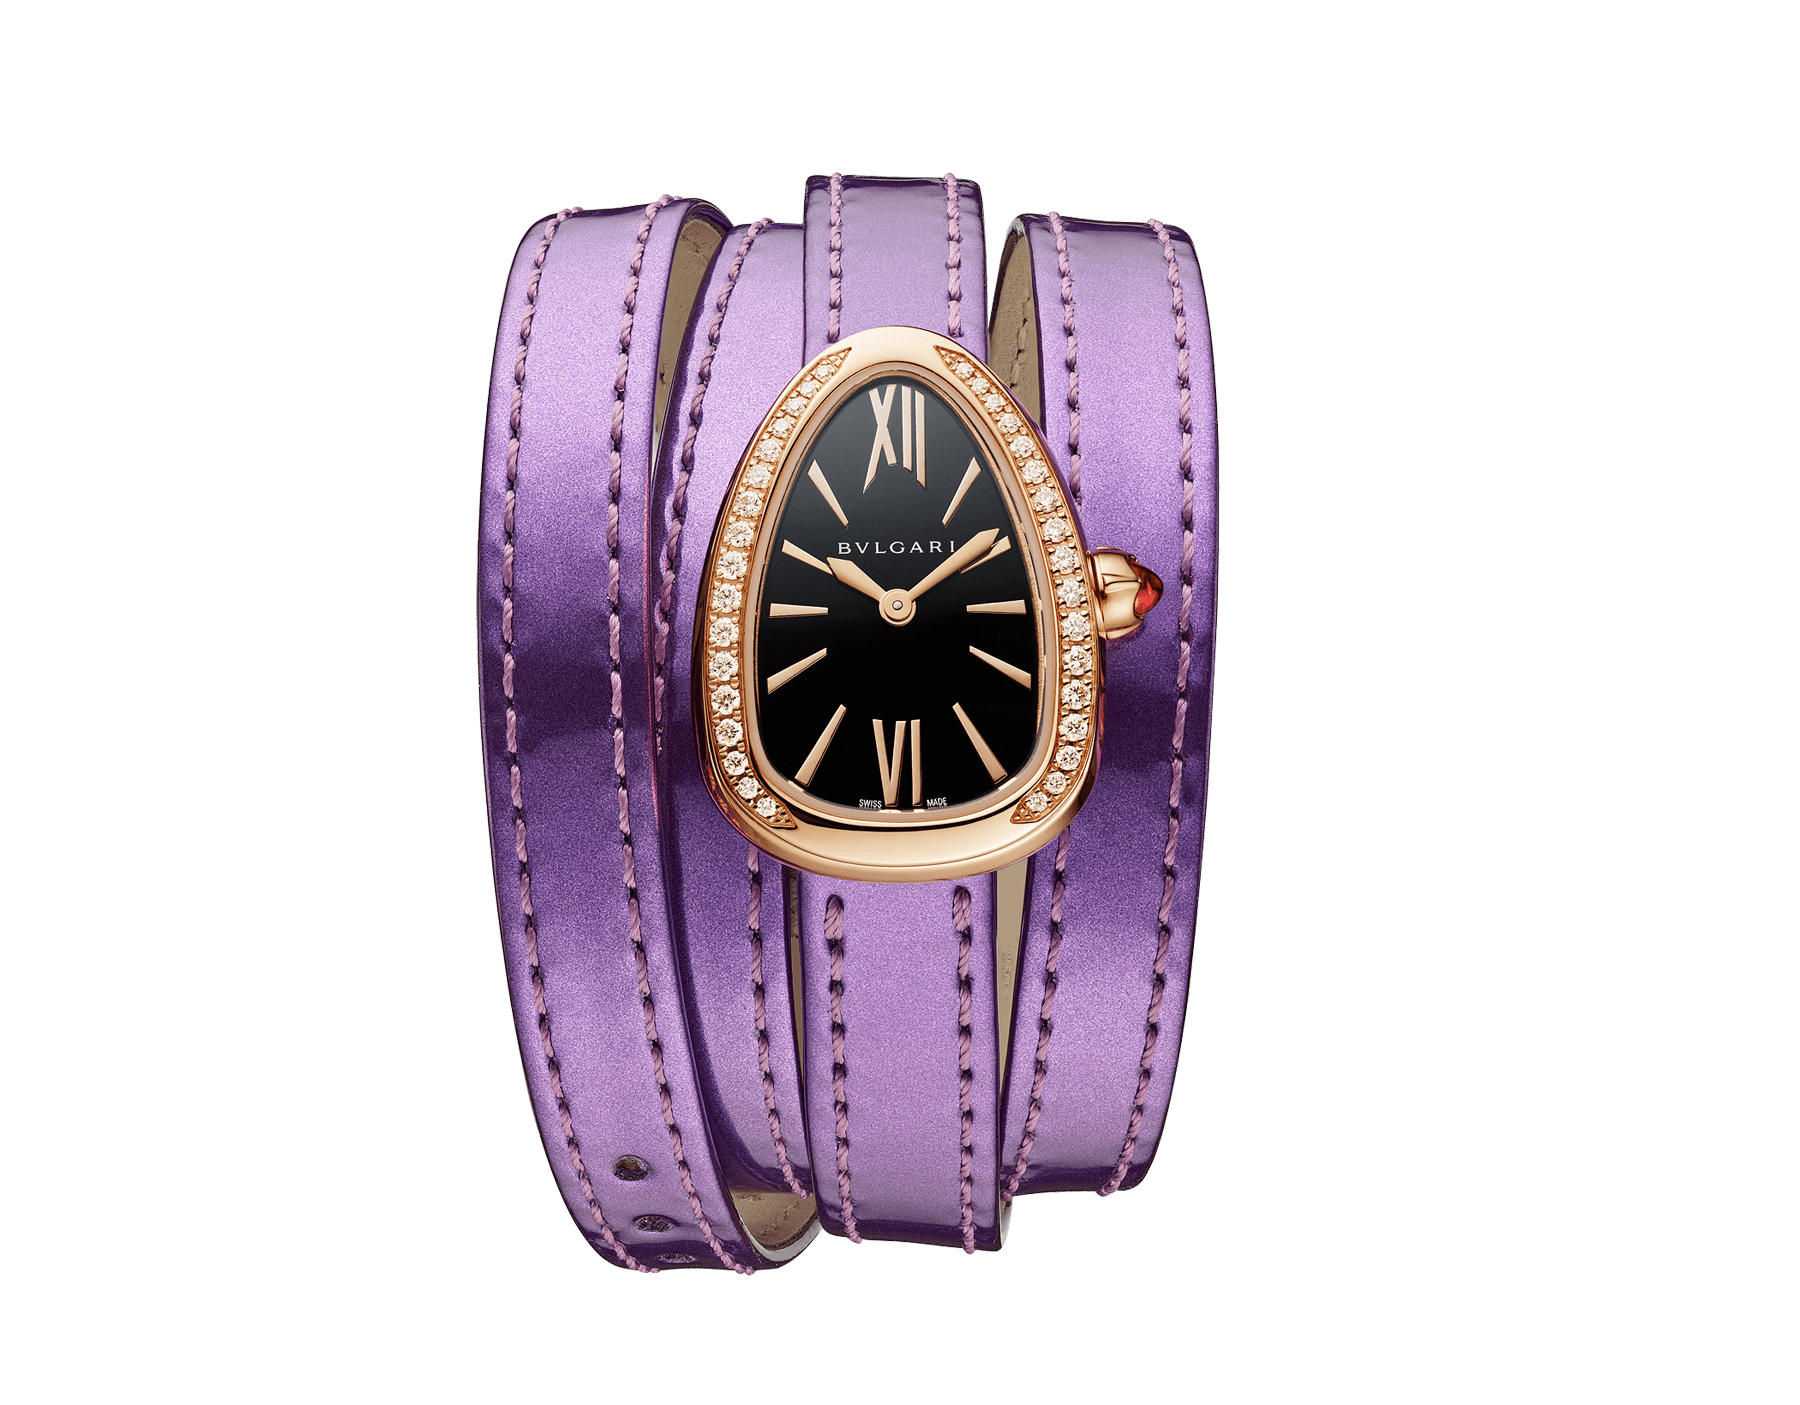 Serpenti watch with 18 kt rose gold case set with diamonds, black lacquered dial and interchangeable qadruple spiral bracelet in wisteria jade brushed metallic calf leather. 102969 image 1